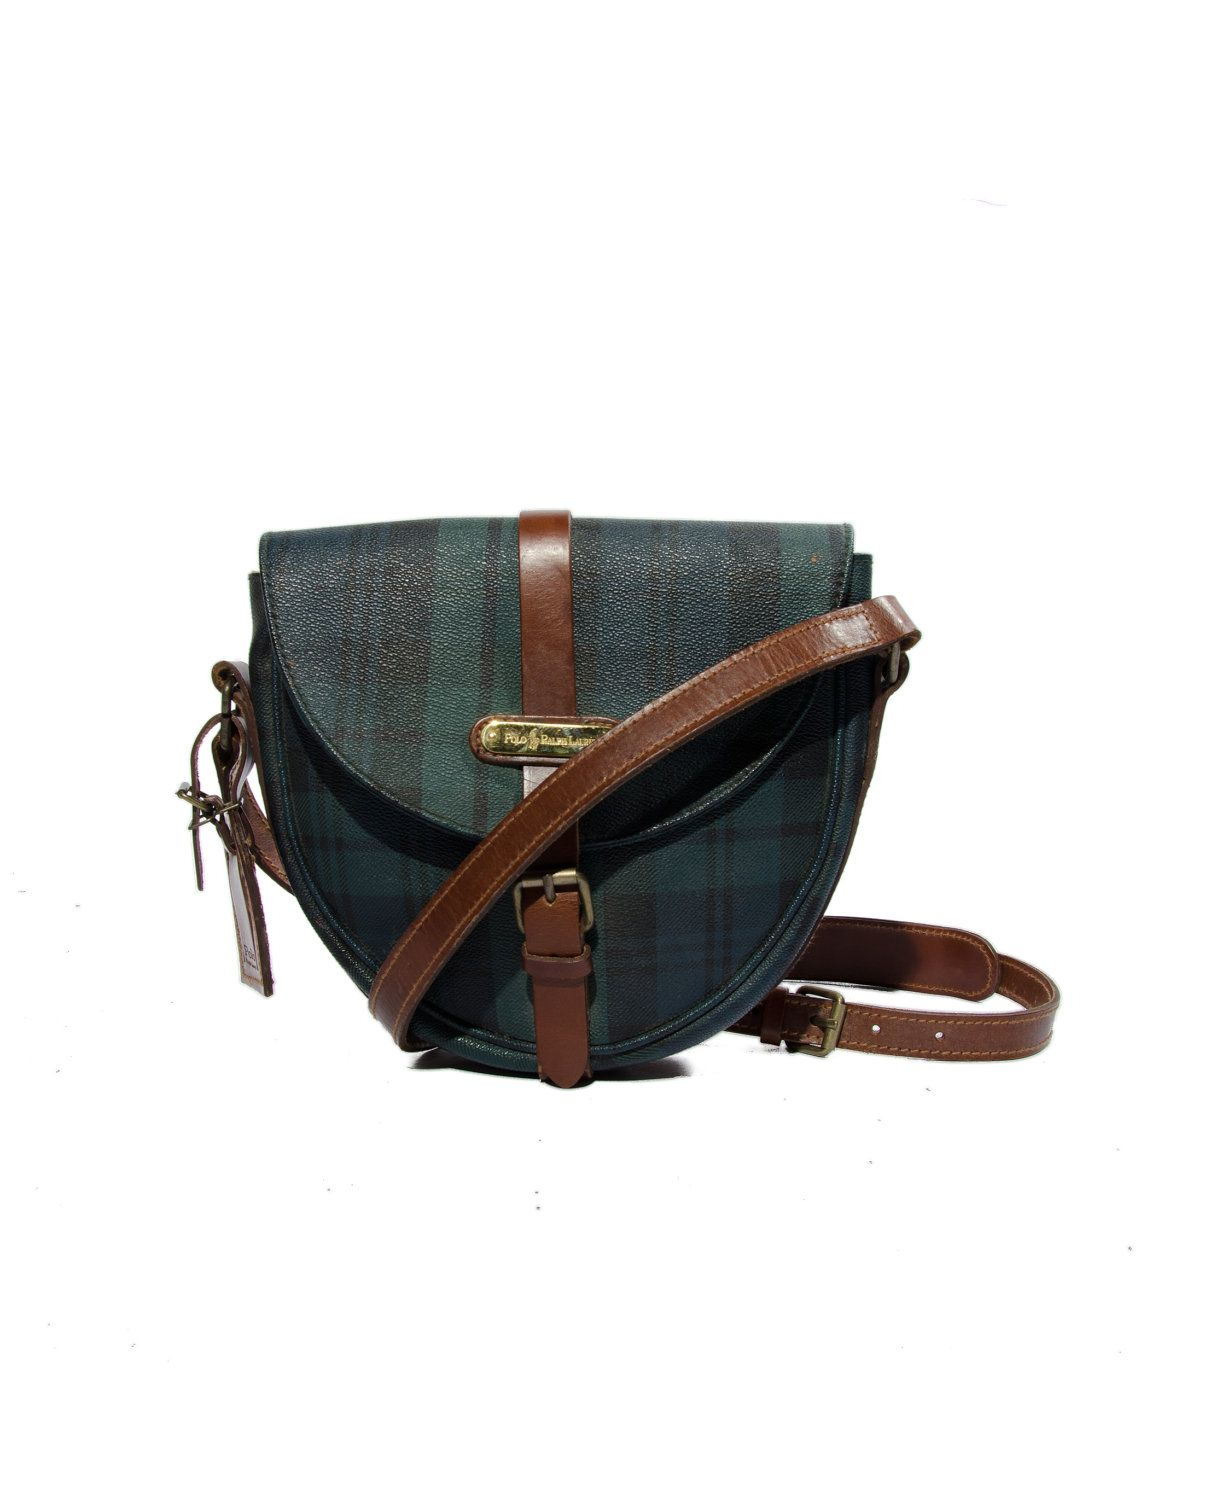 80 s Vintage Ralph Lauren Blackwatch Plaid Saddle Bag Purse with Brown  Leather Trim Women s Handbag.  85.00 aa256016359b0